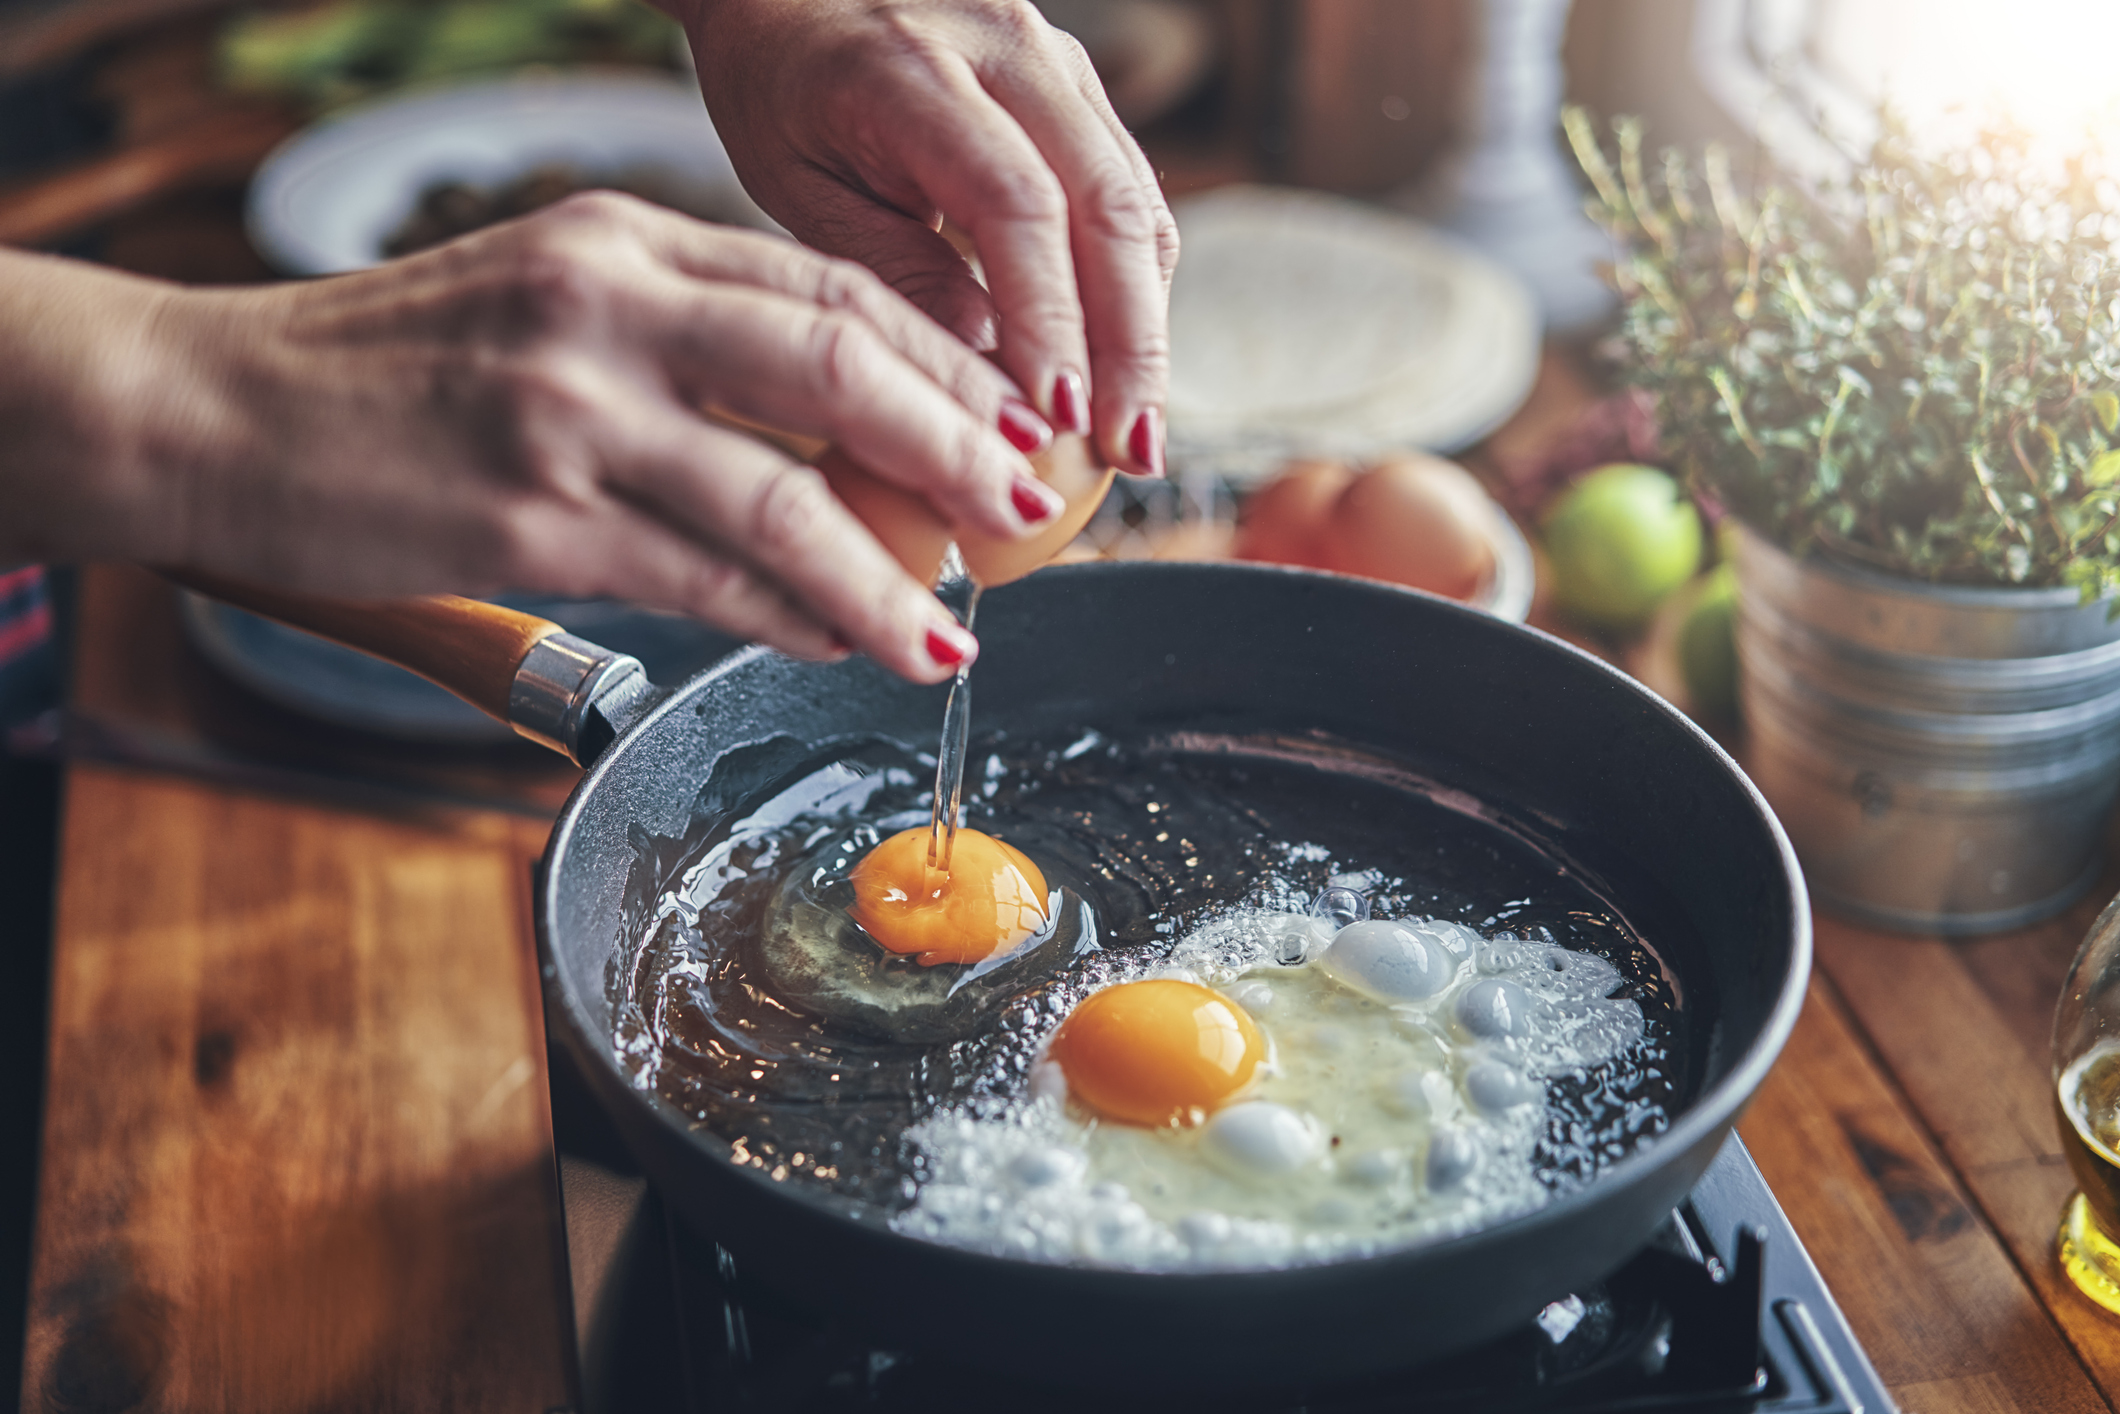 close up of someone frying an egg in a pan